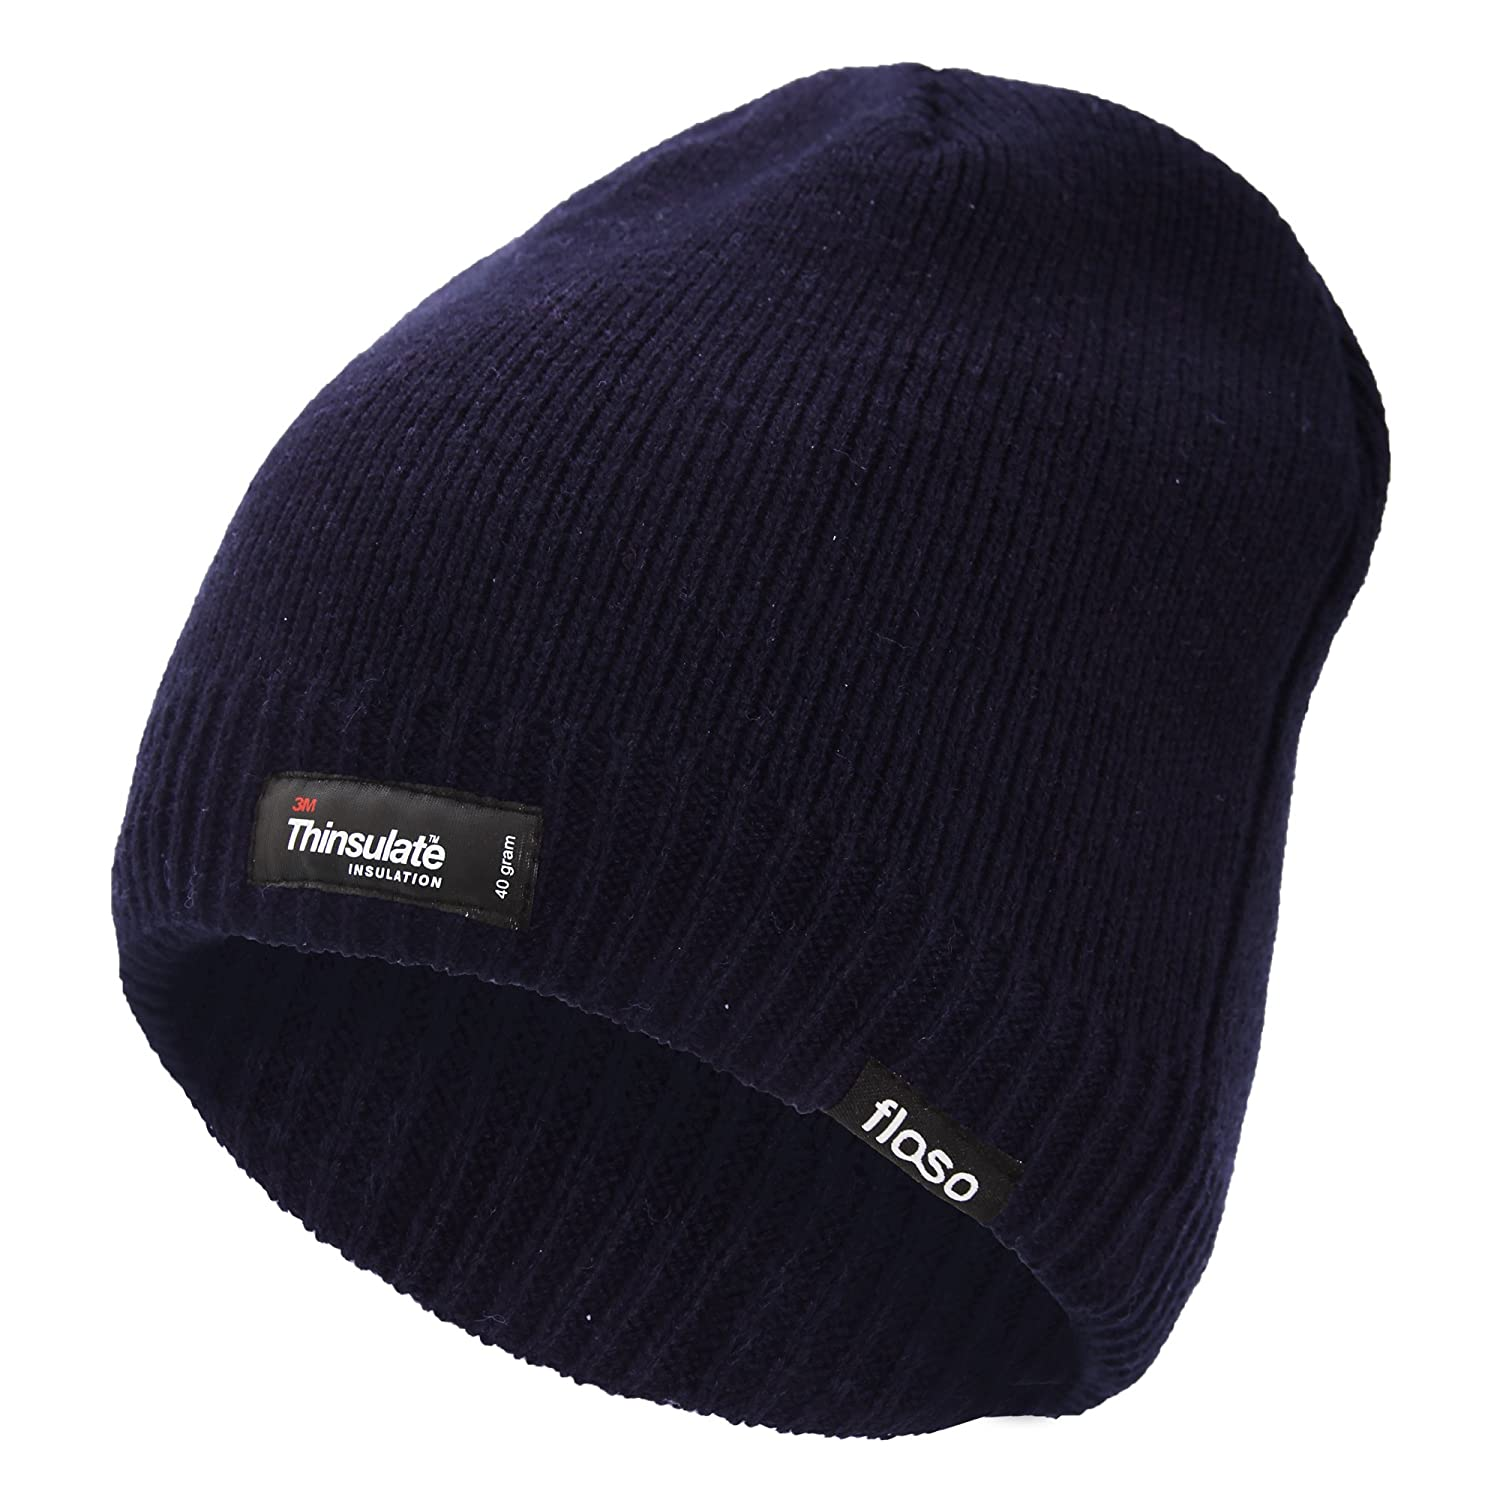 01a4acb6f7f Floso Mens Plain Thinsulate Thermal Knitted Waterproof Winter Hat   Amazon.co.uk  Clothing